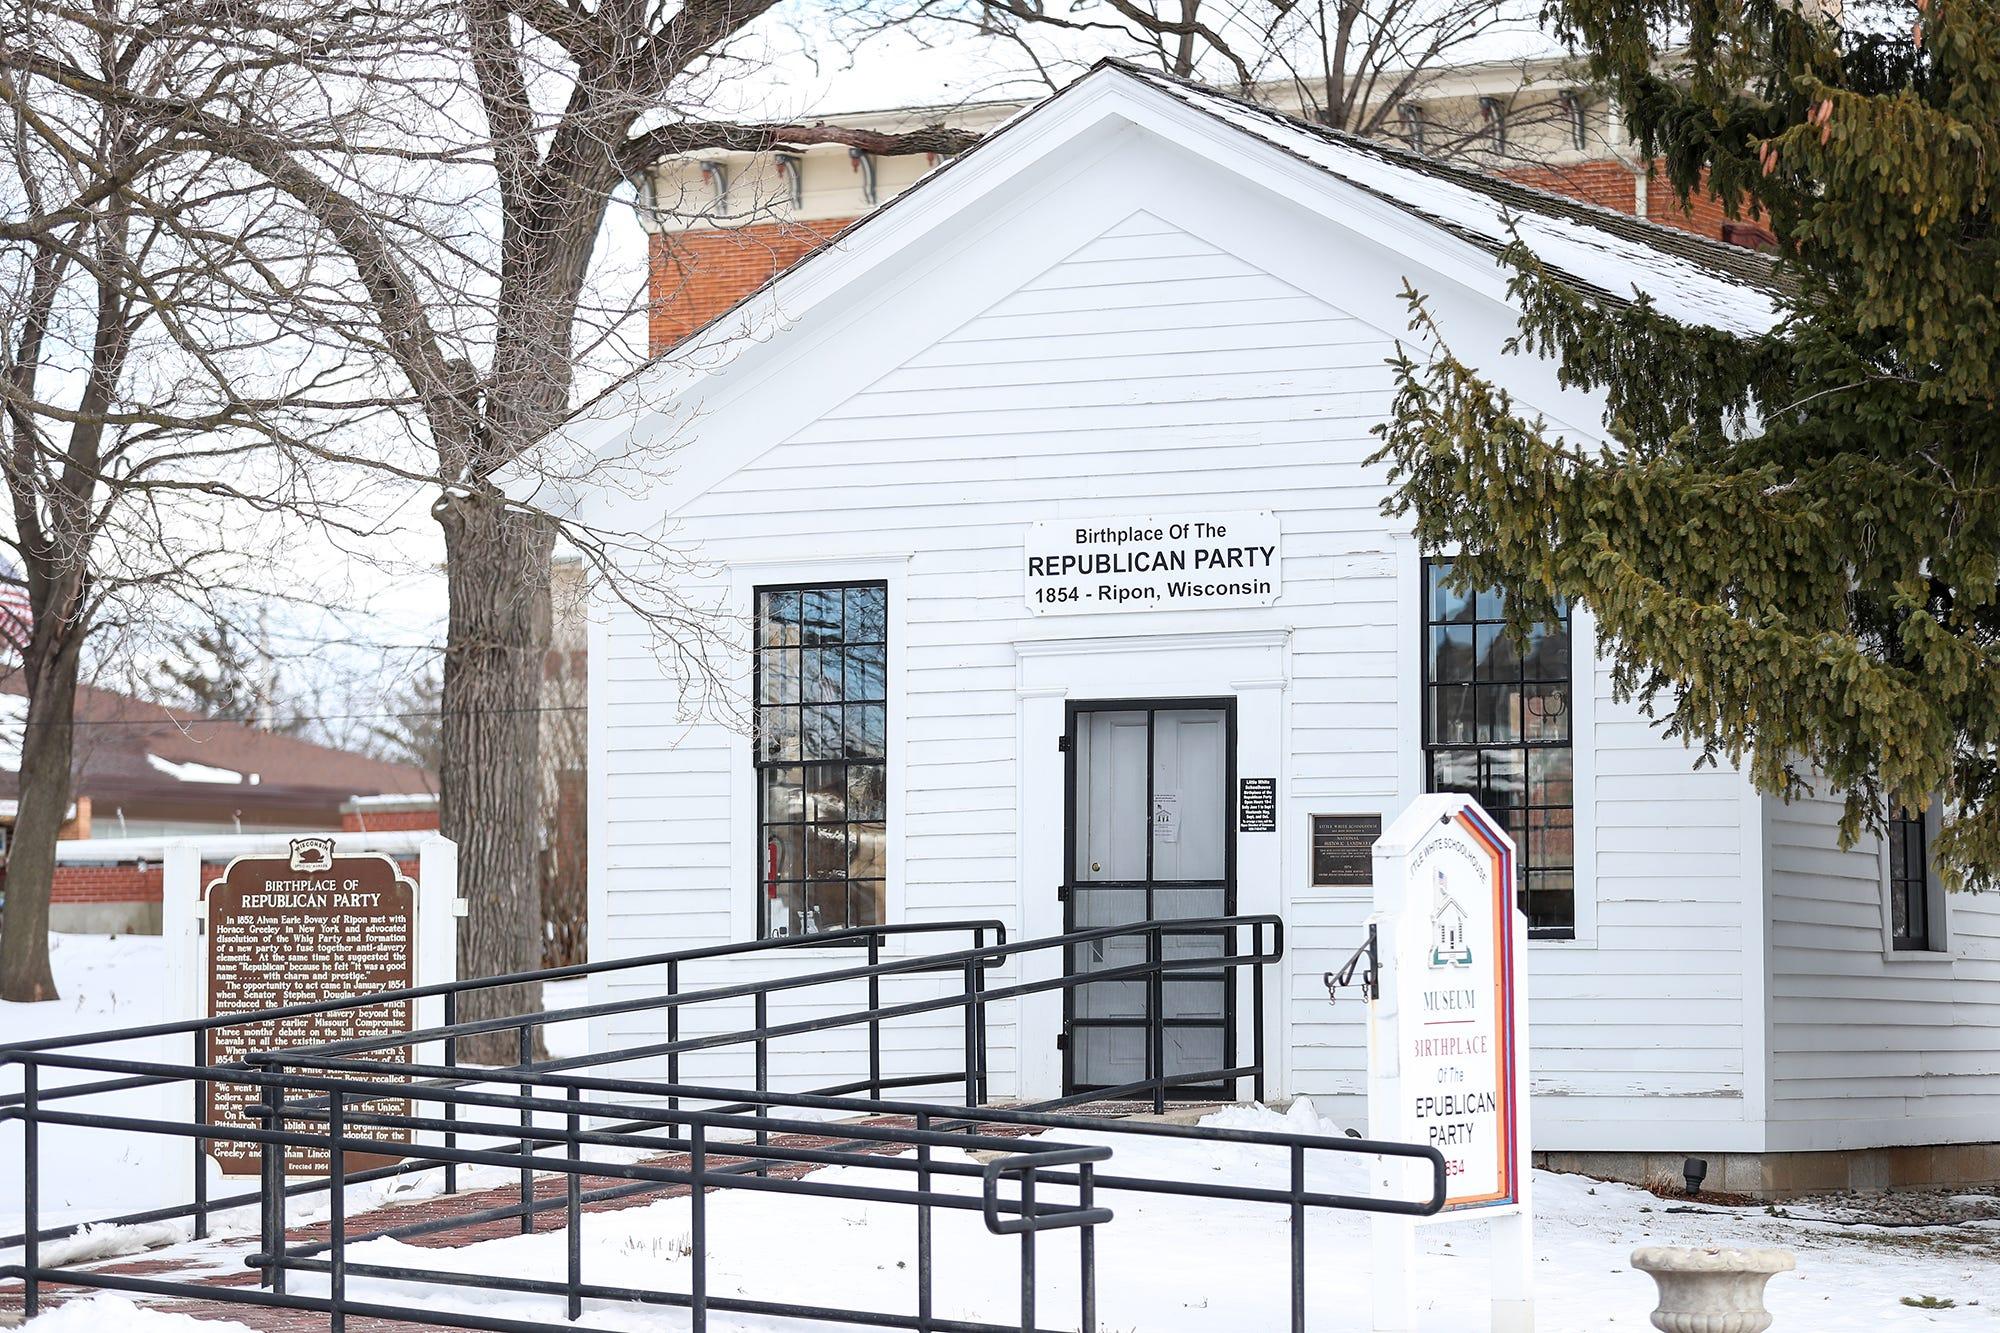 The Little White Schoolhouse, also known as the Birthplace of the Republican Party,  at 305 Blackburn Street in Ripon. Citizens met here in 1854 to discuss the beginnings of the Republican Party.